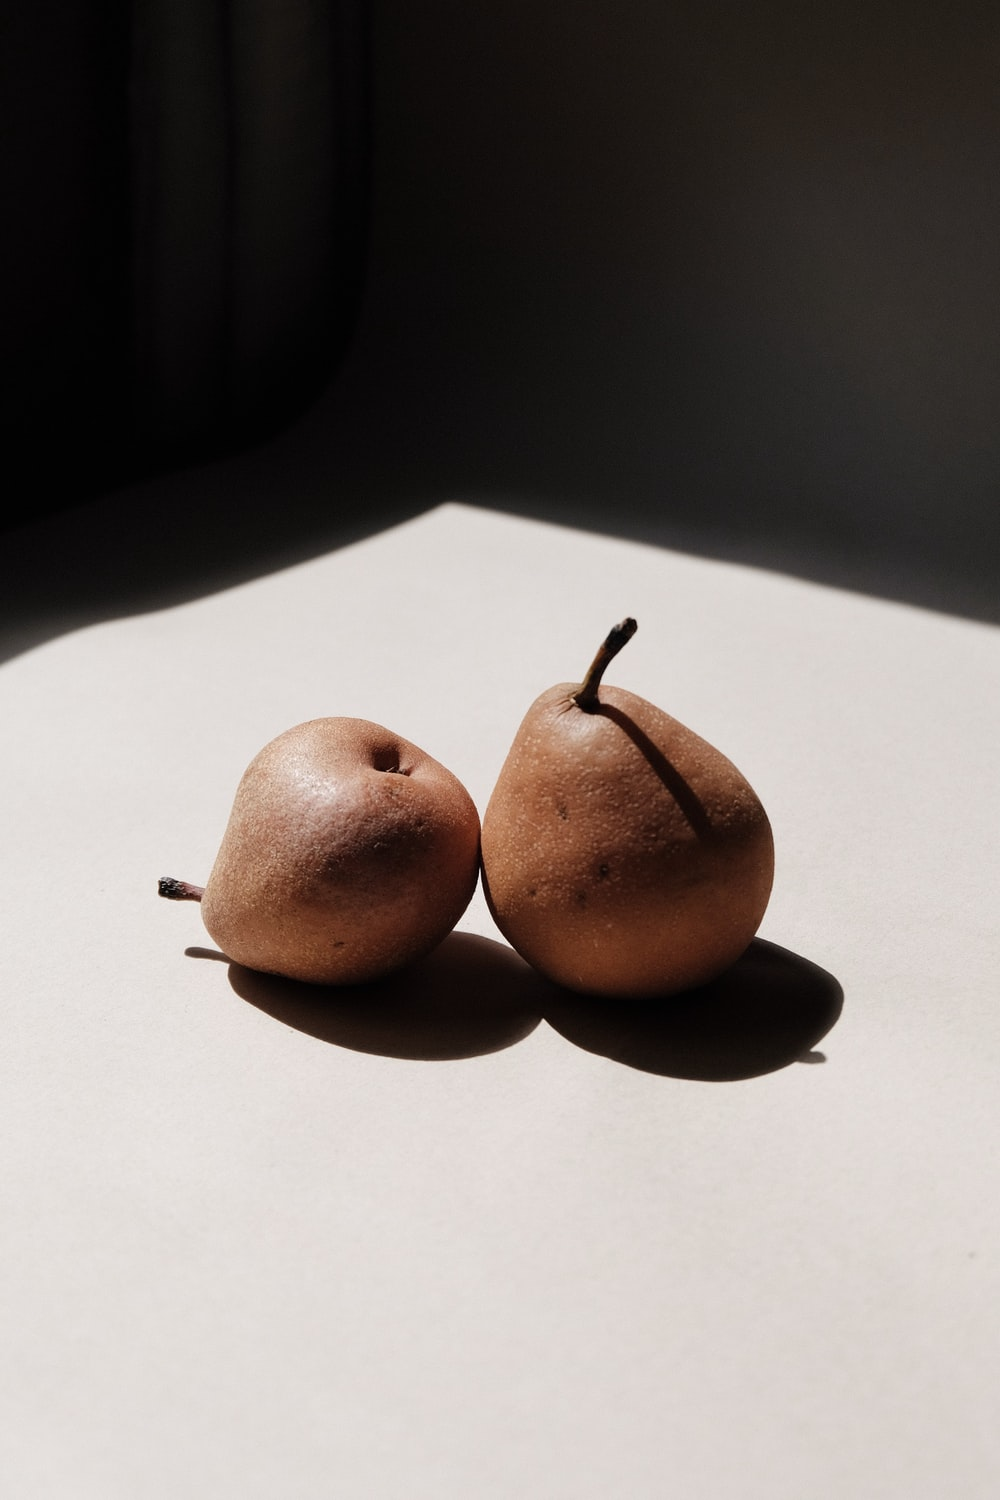 two brown round fruits on white surface